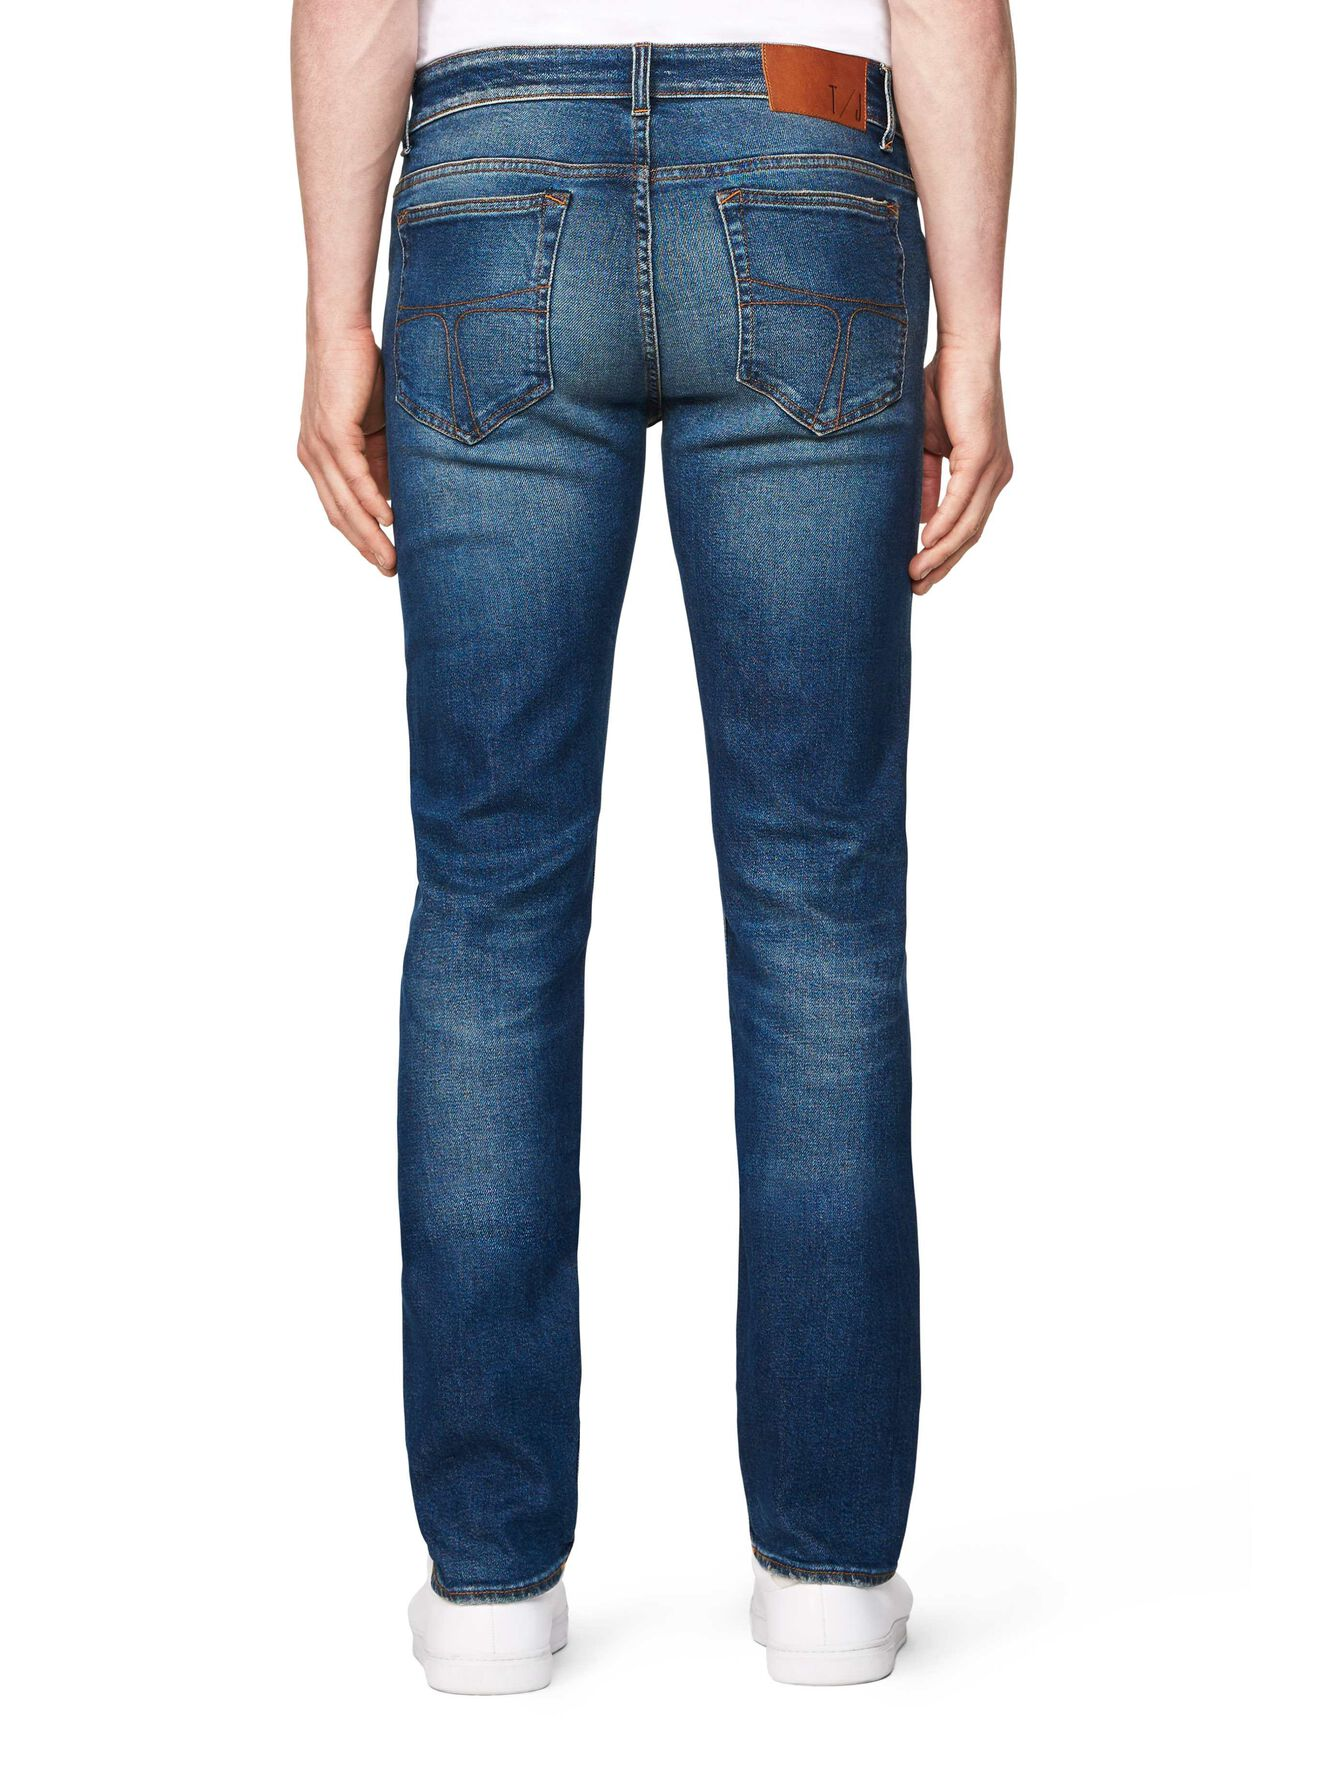 STRAIGHT JEANS in Dust blue from Tiger of Sweden